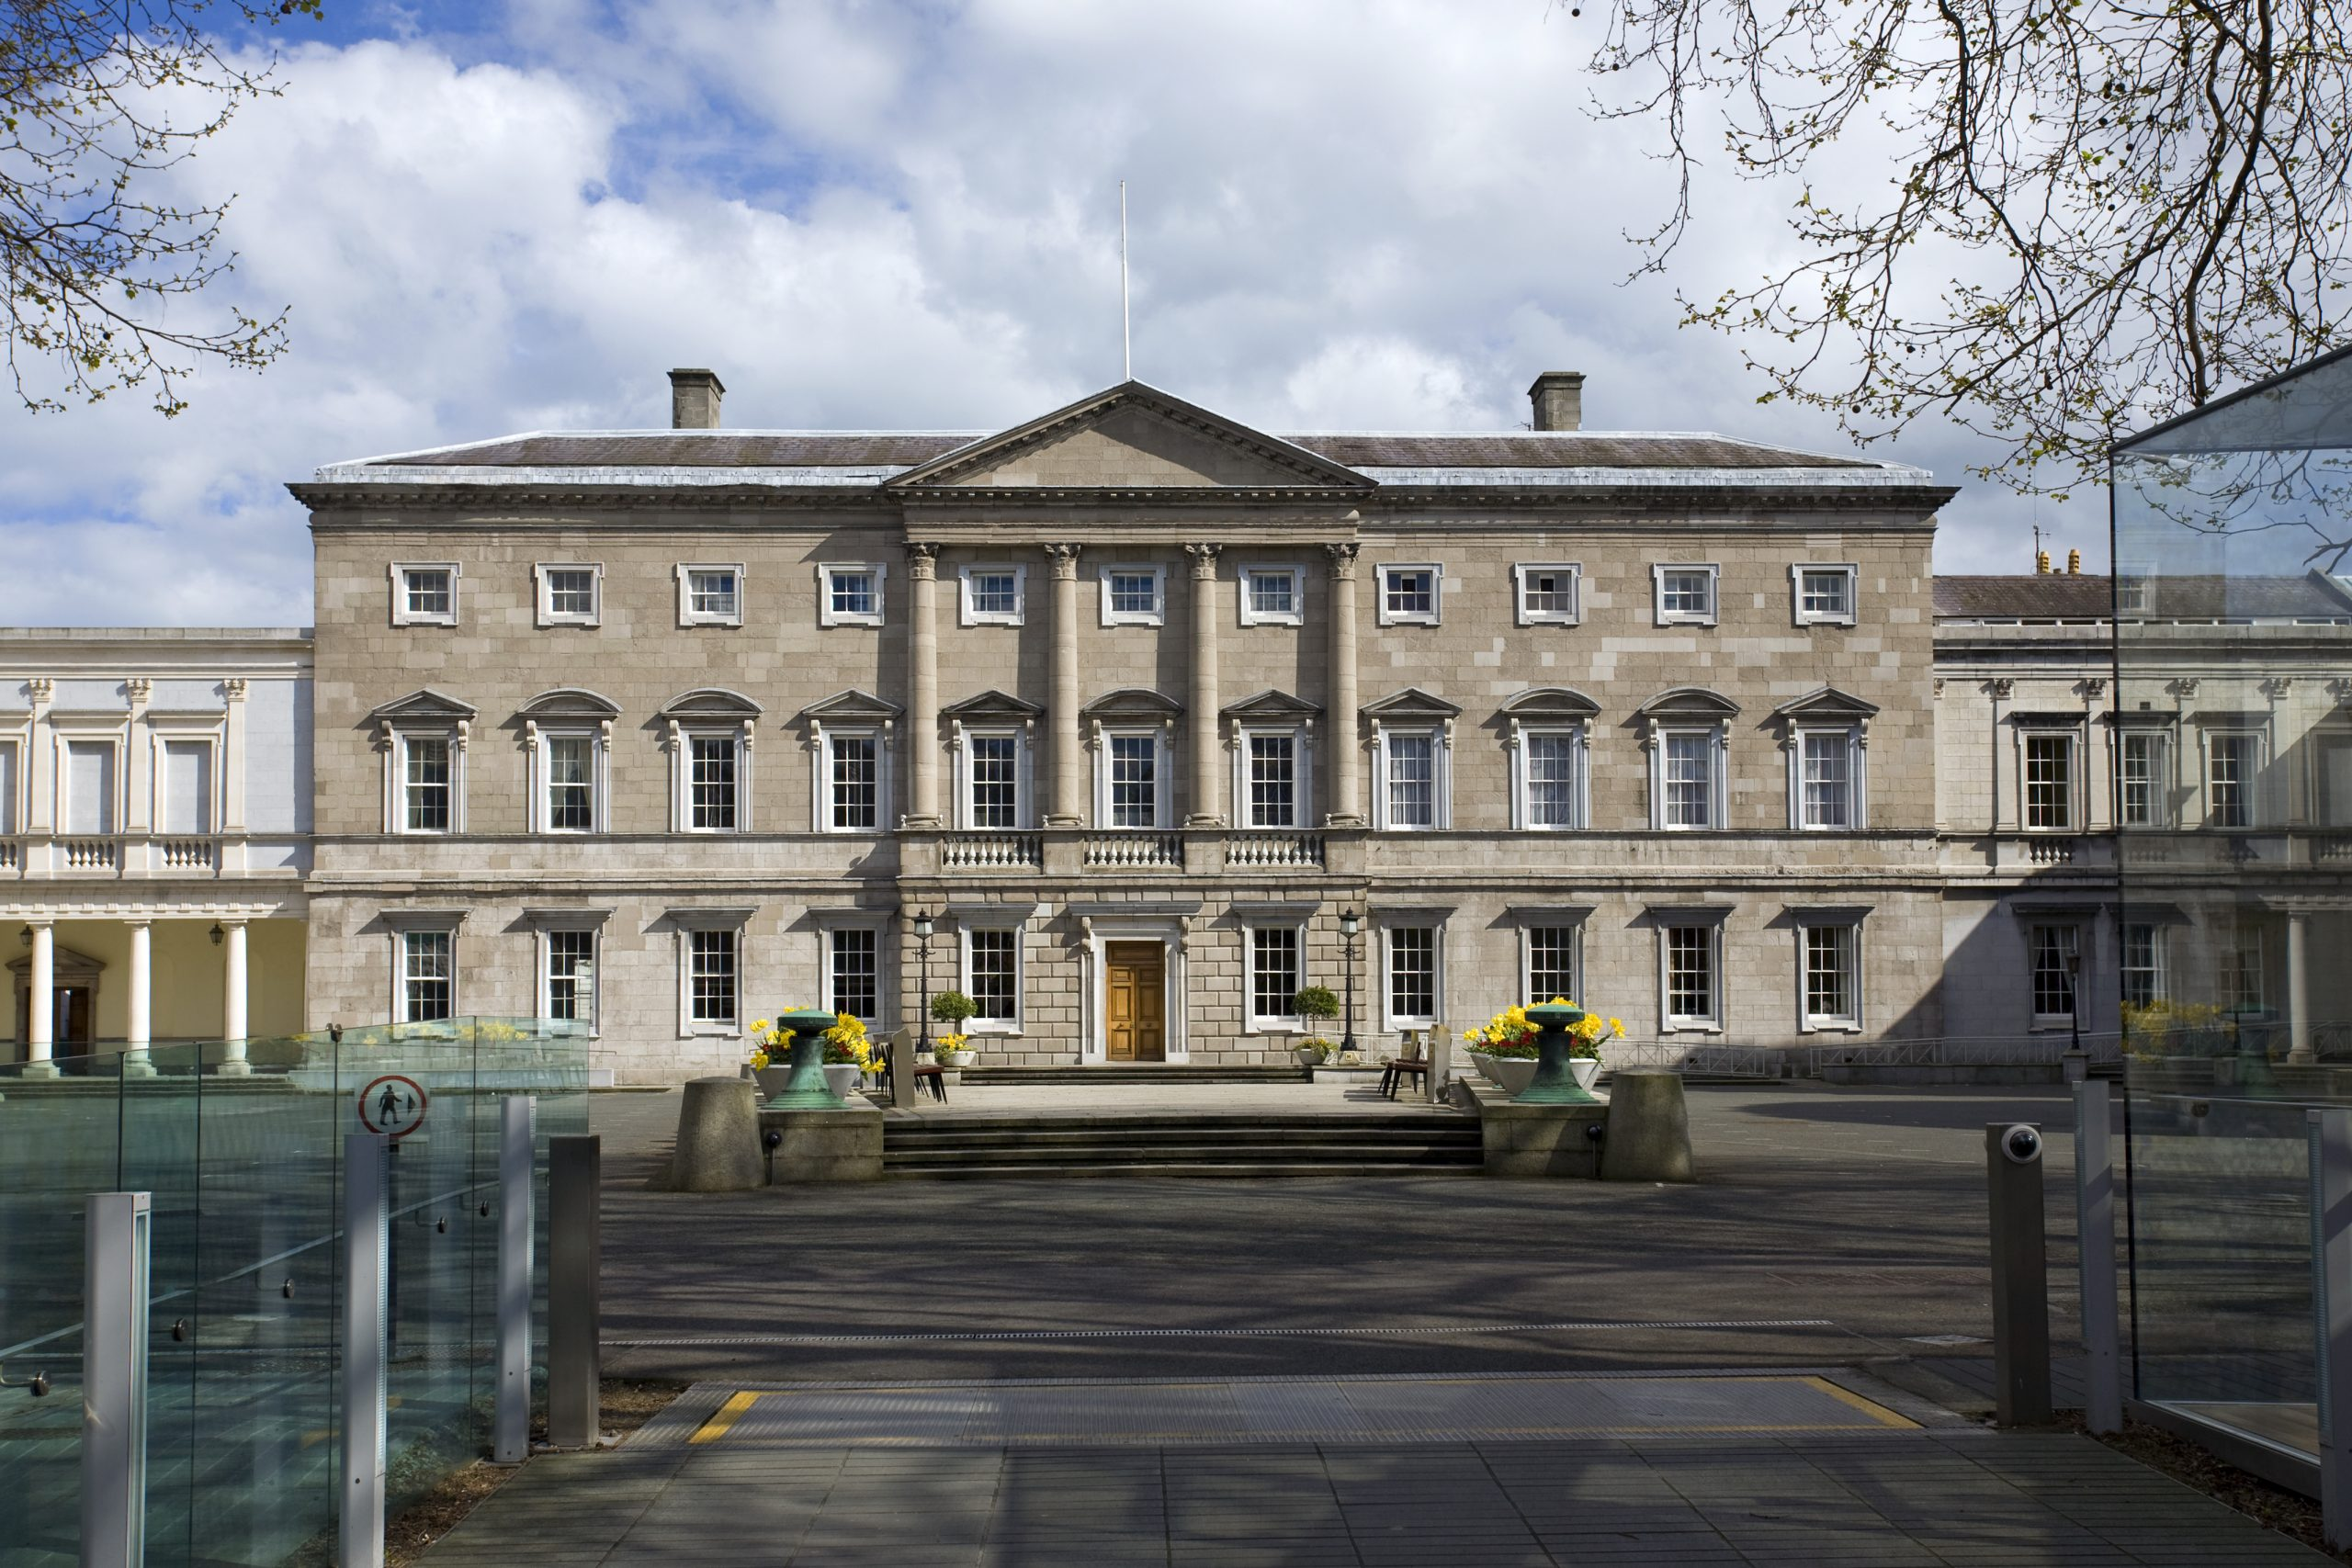 24.05.2021 – Reality of Repeal is the opposite of what politicians promised – 3rd Anniversary of Repeal takes place tomorrow